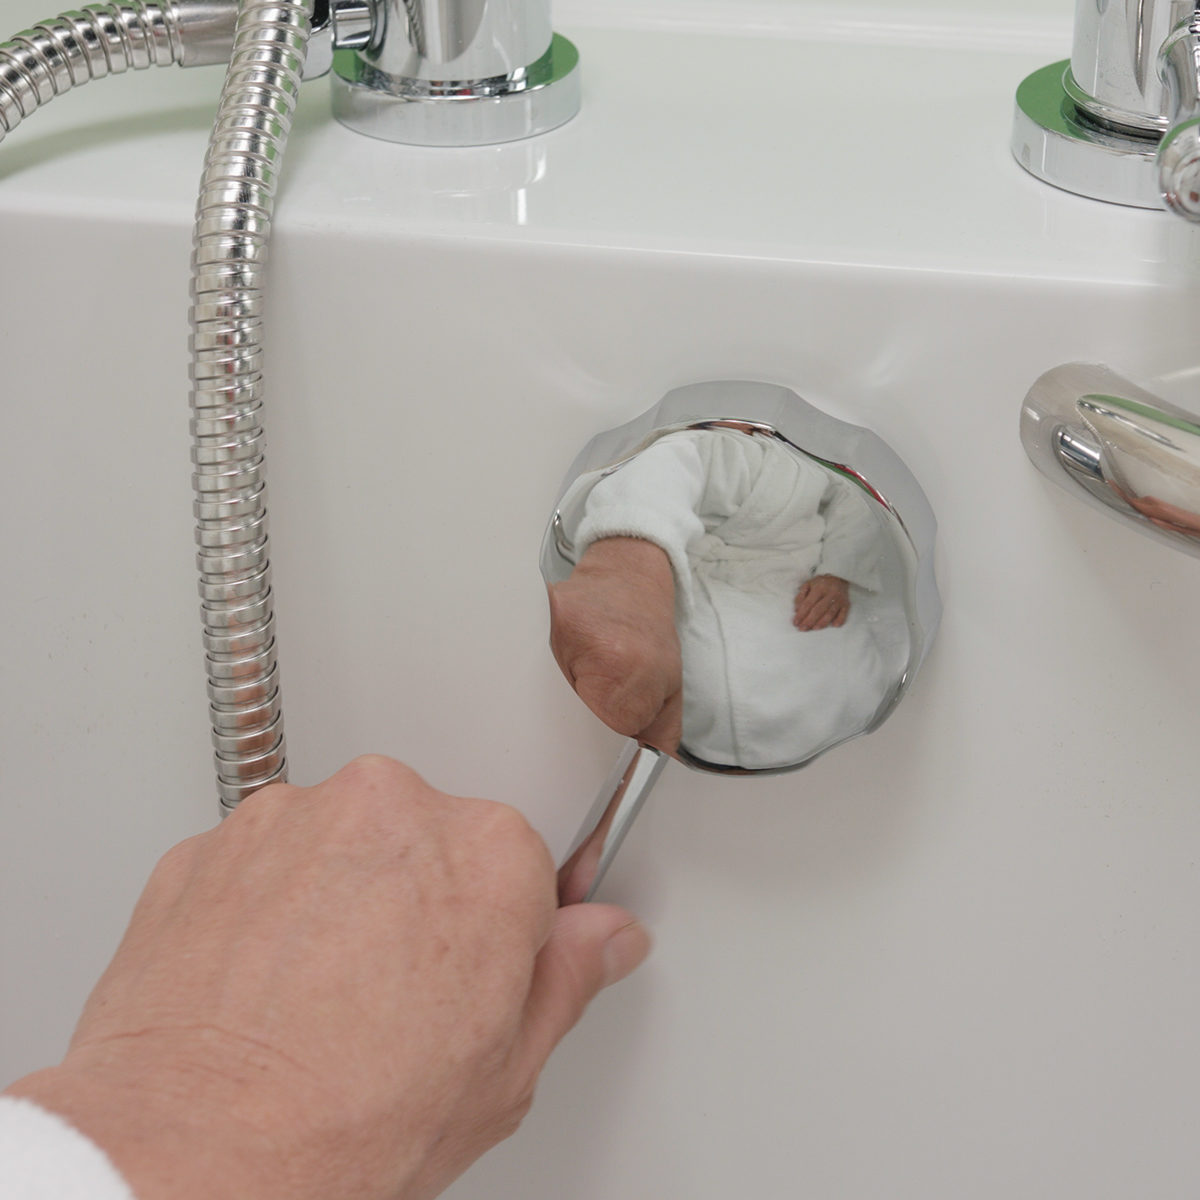 Turning of the walk-in tub quick release drain